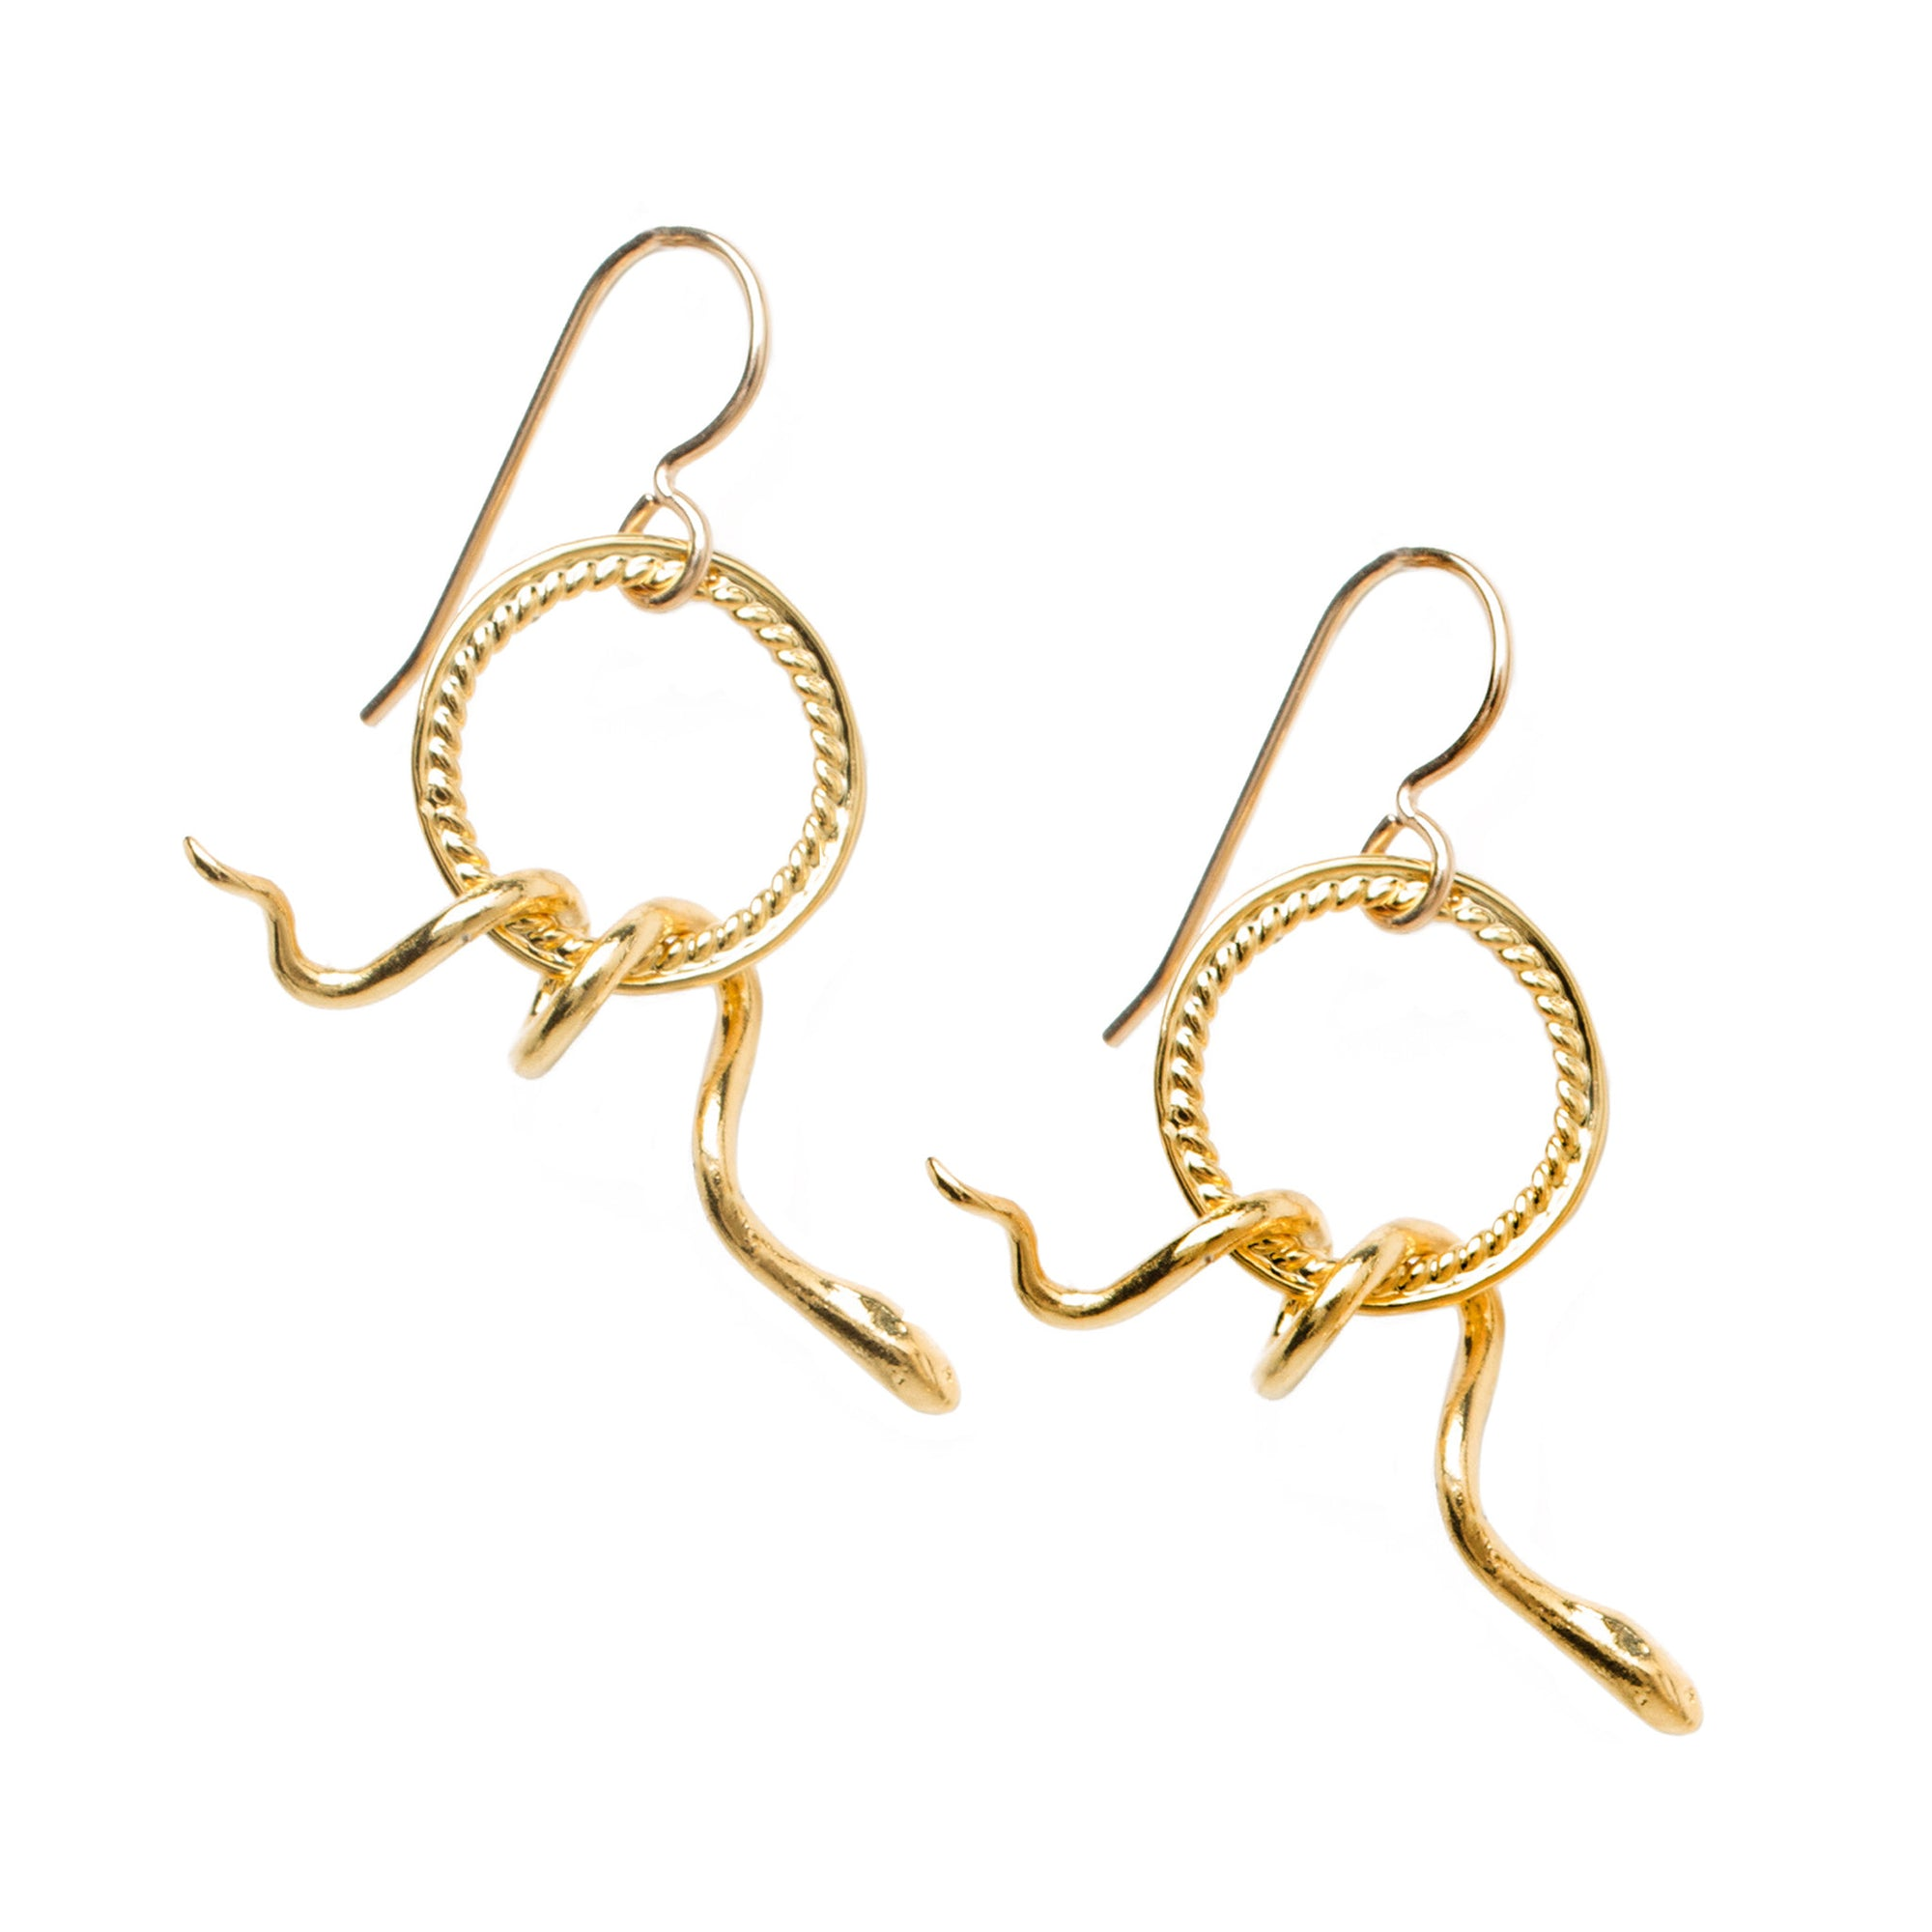 Snake Earrings - Gold-Plated